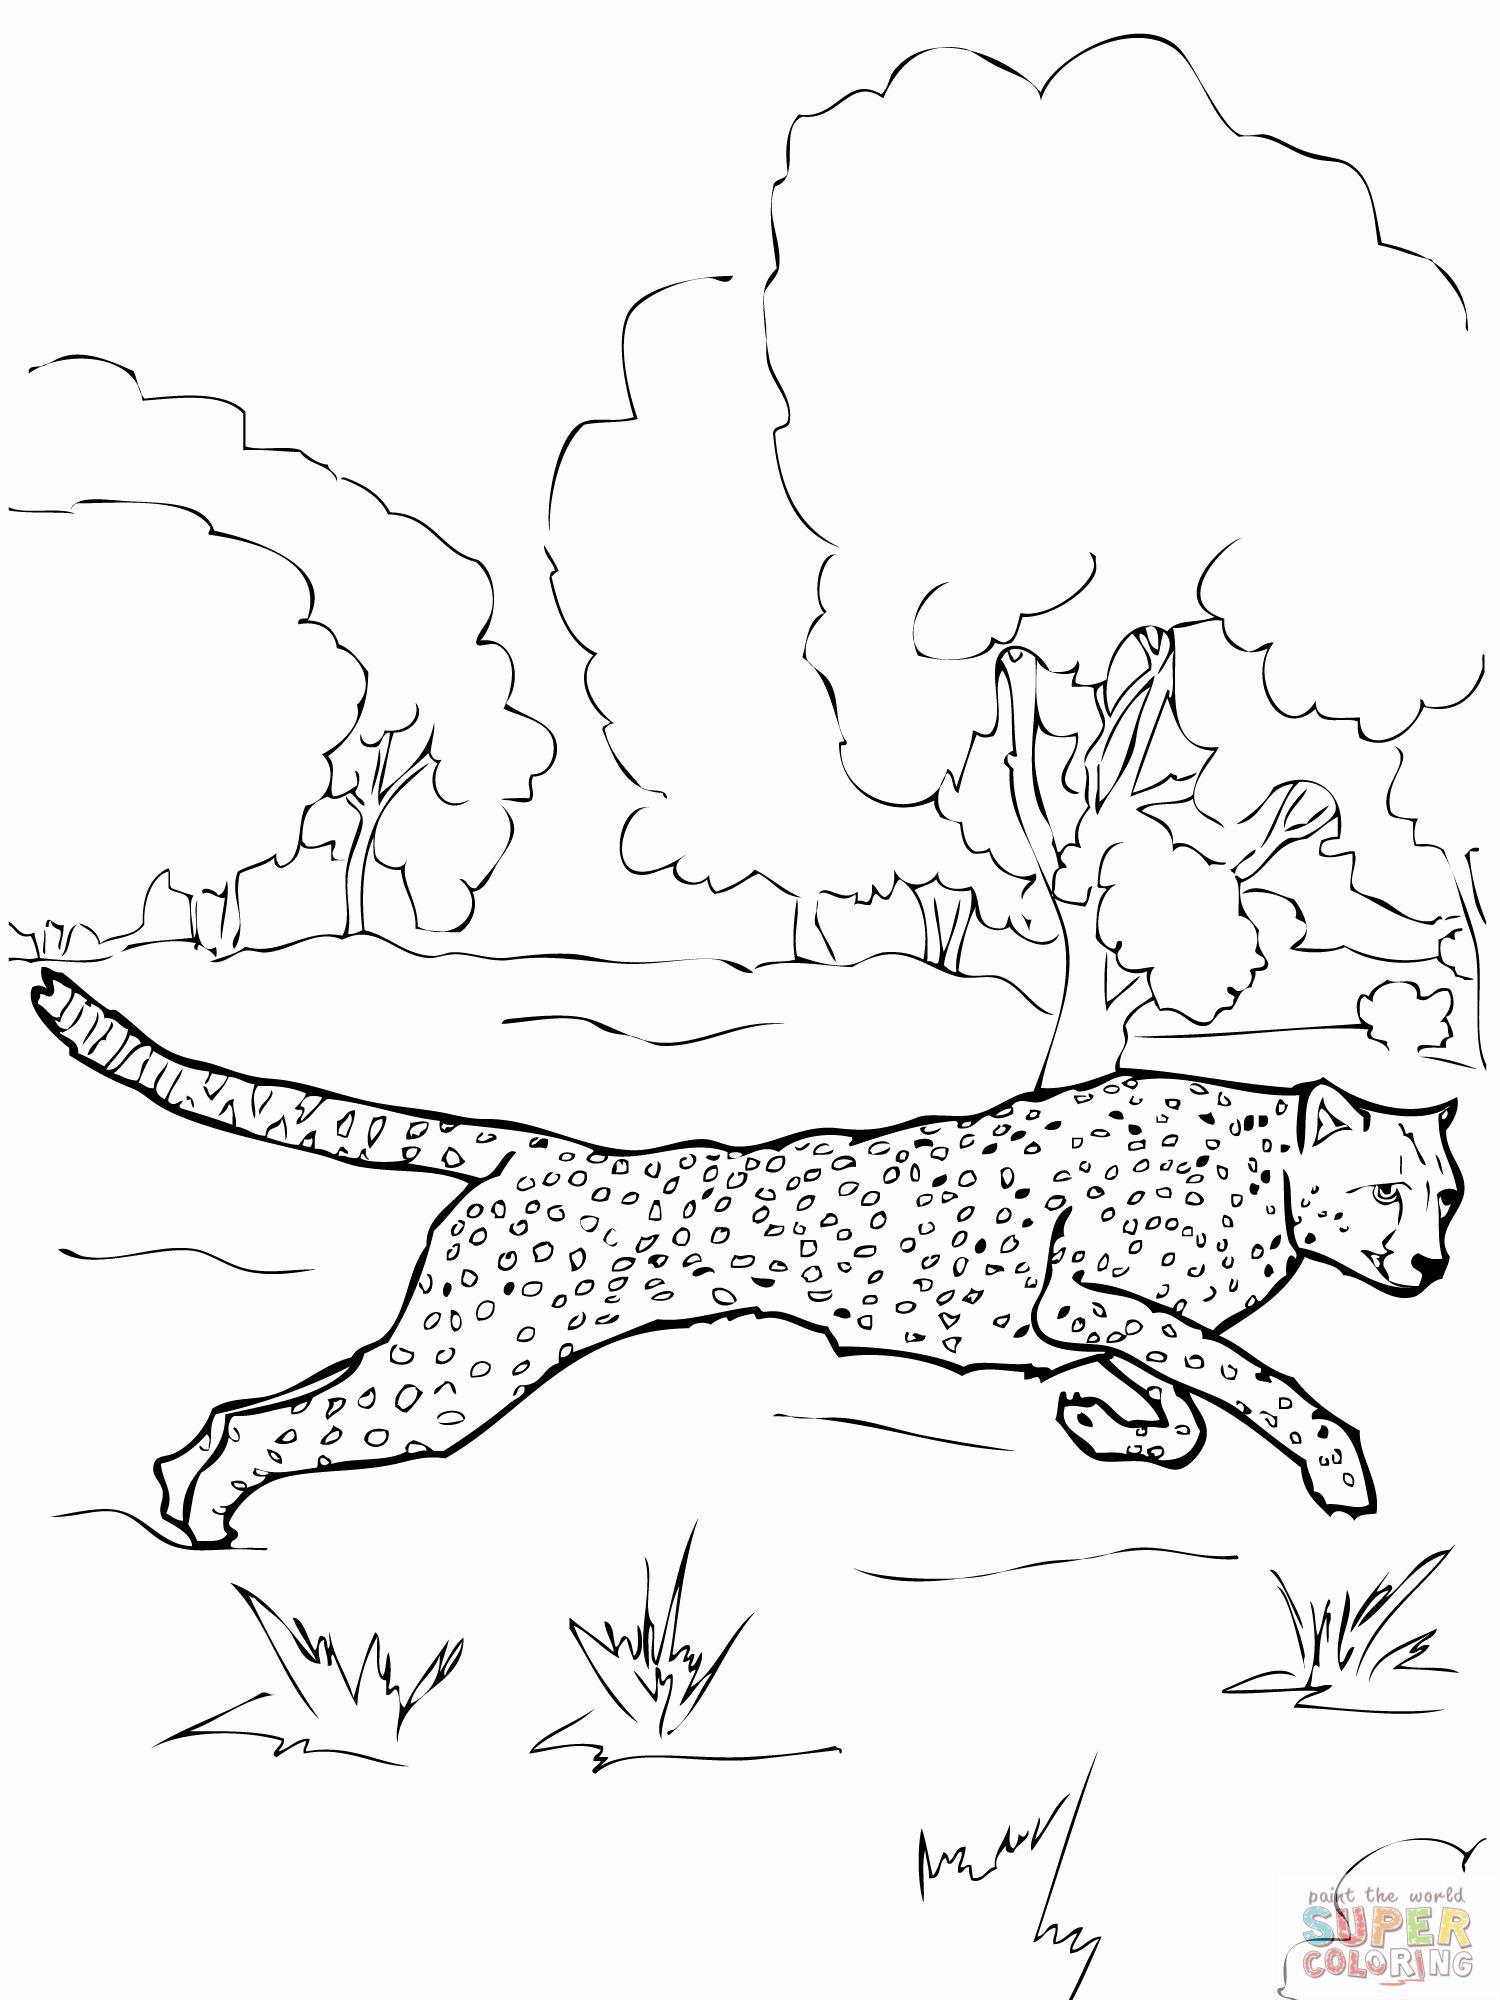 Cheetah coloring page | C is for | Pinterest | Lugares para visitar ...